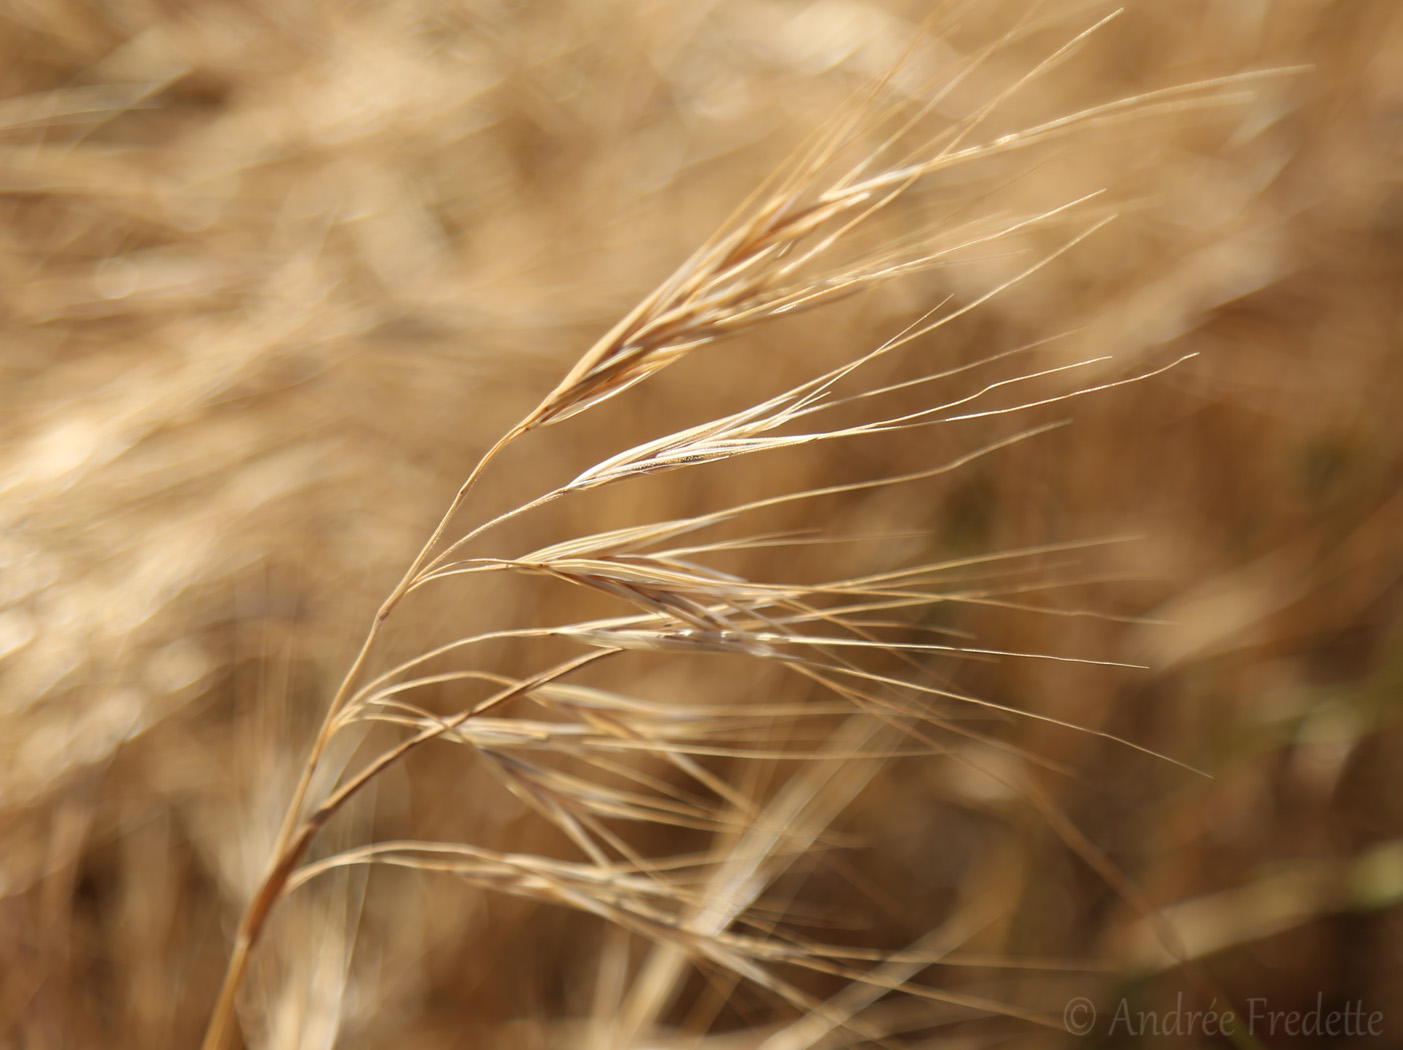 Dry grass, almost abstract. Photo by Andrée Fredette